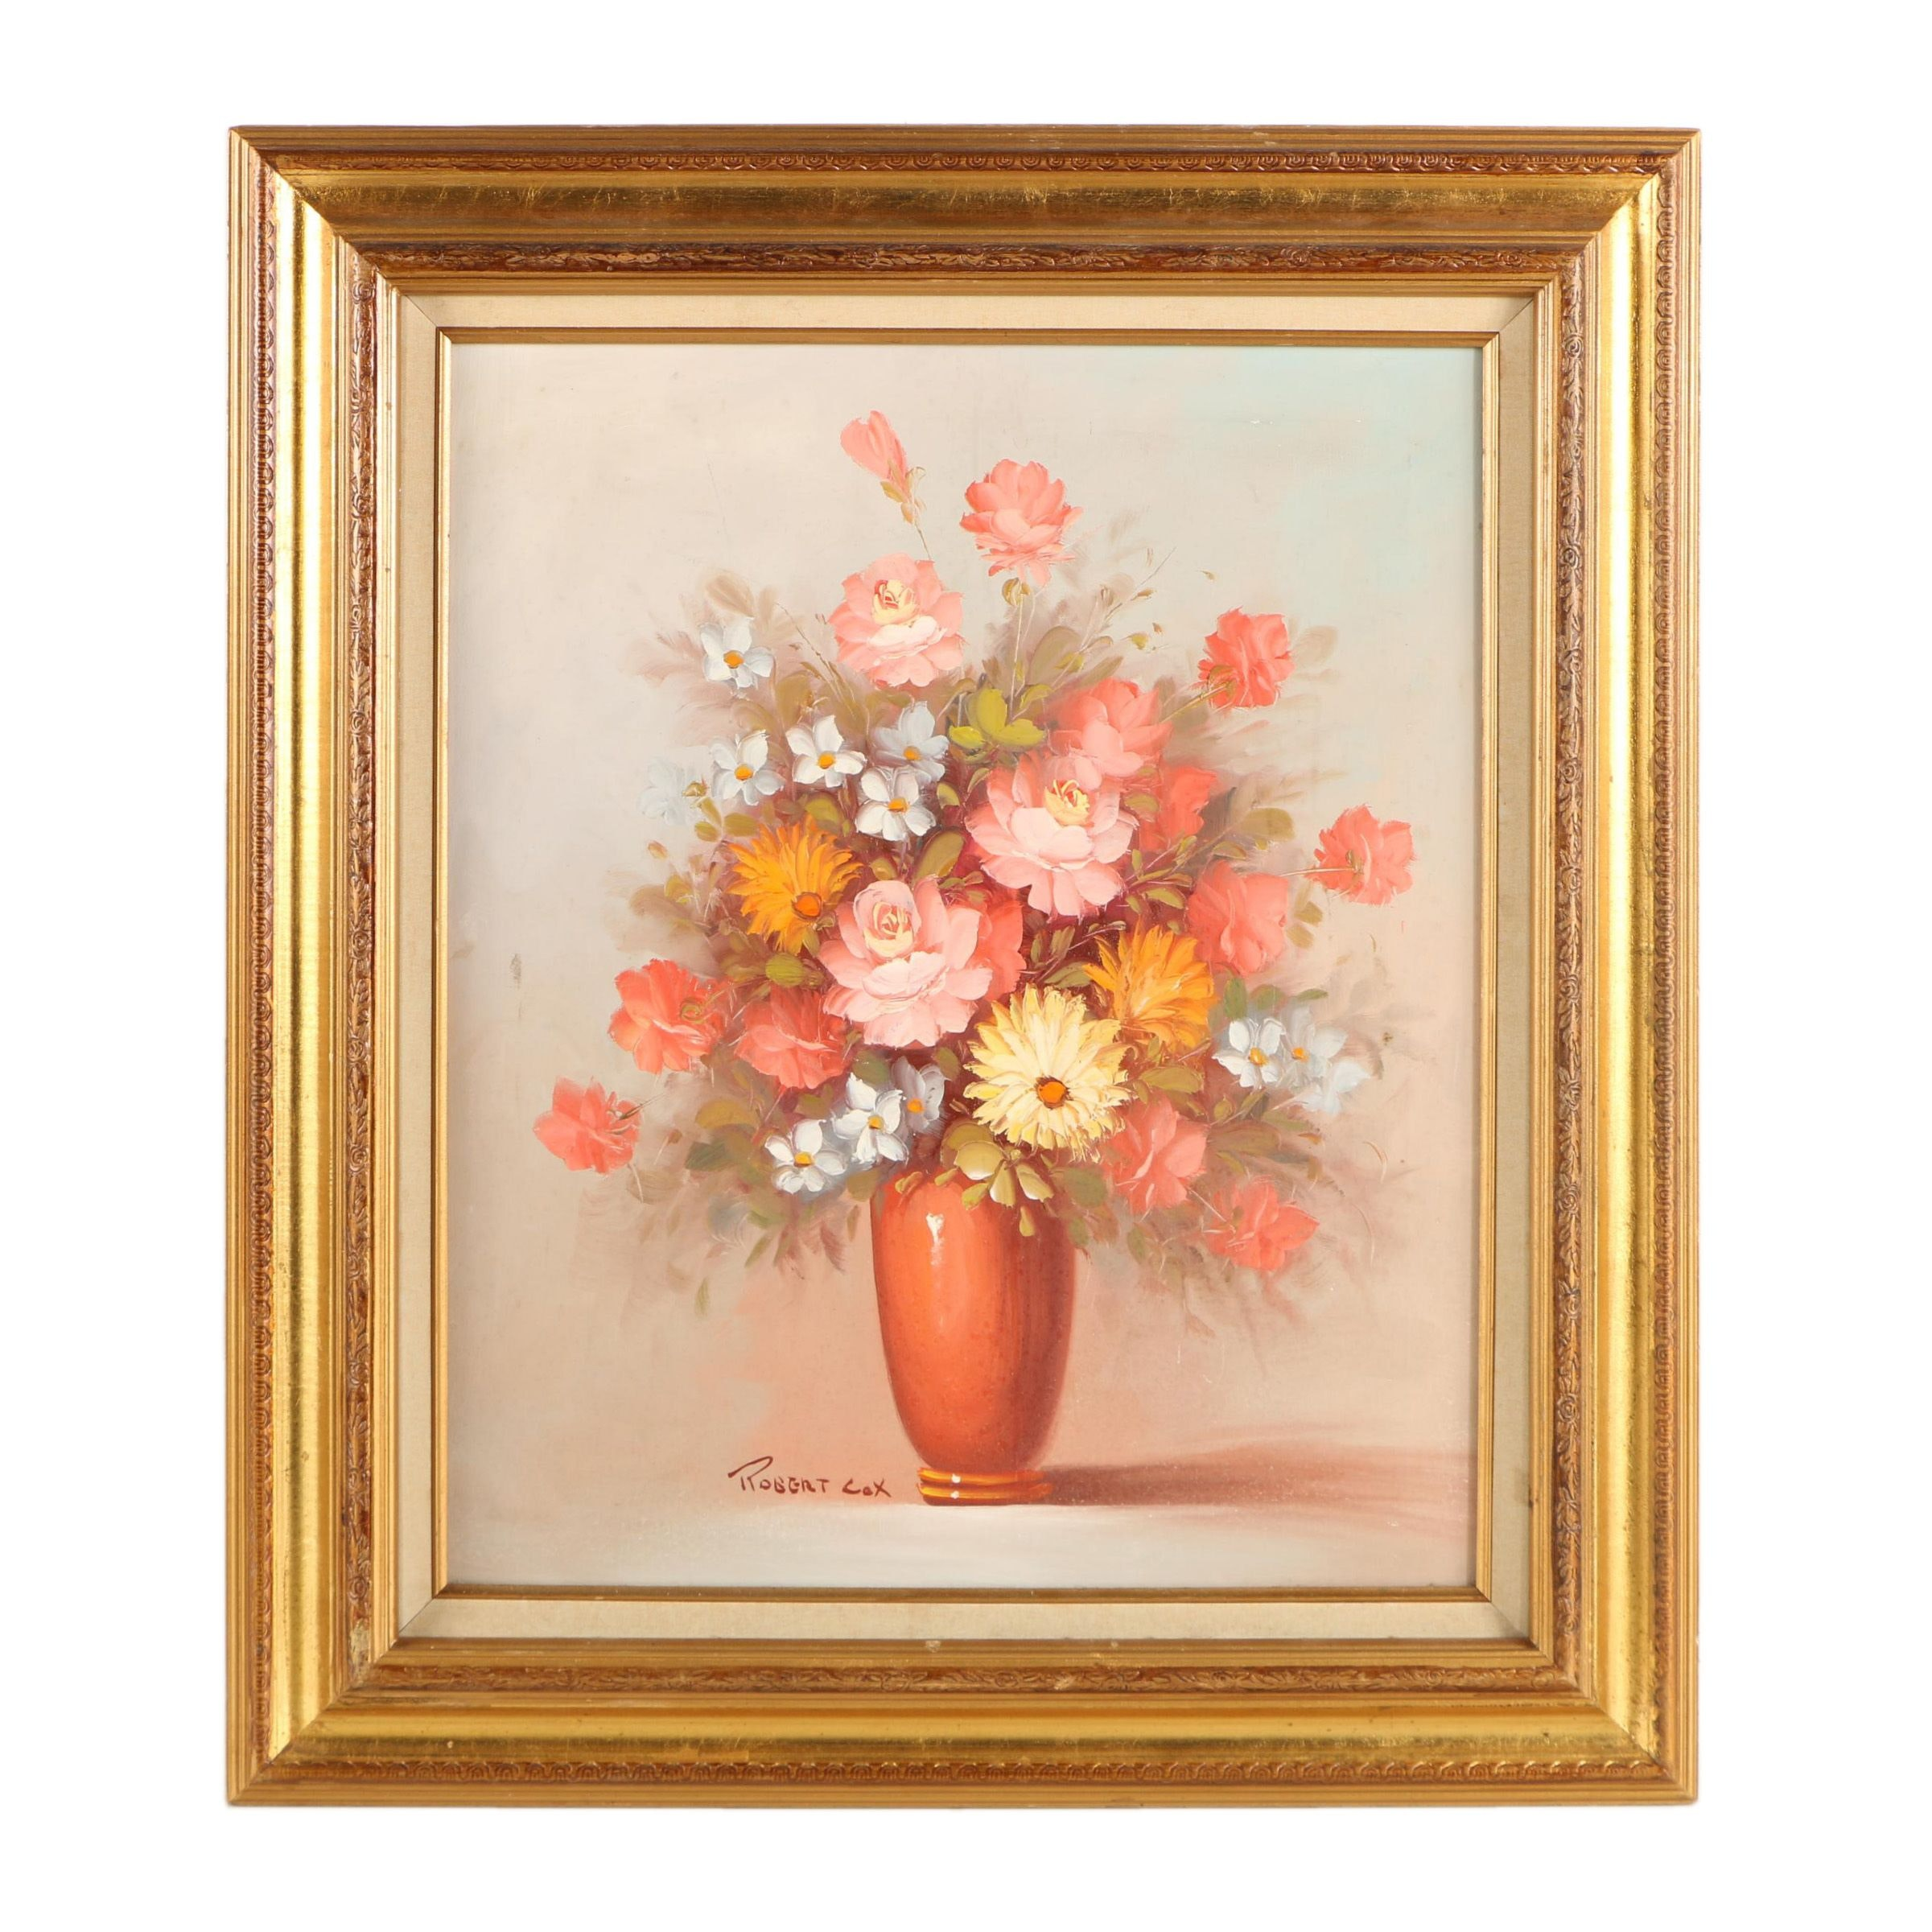 Robert Cox Oil Painting on Canvas Floral Still Life